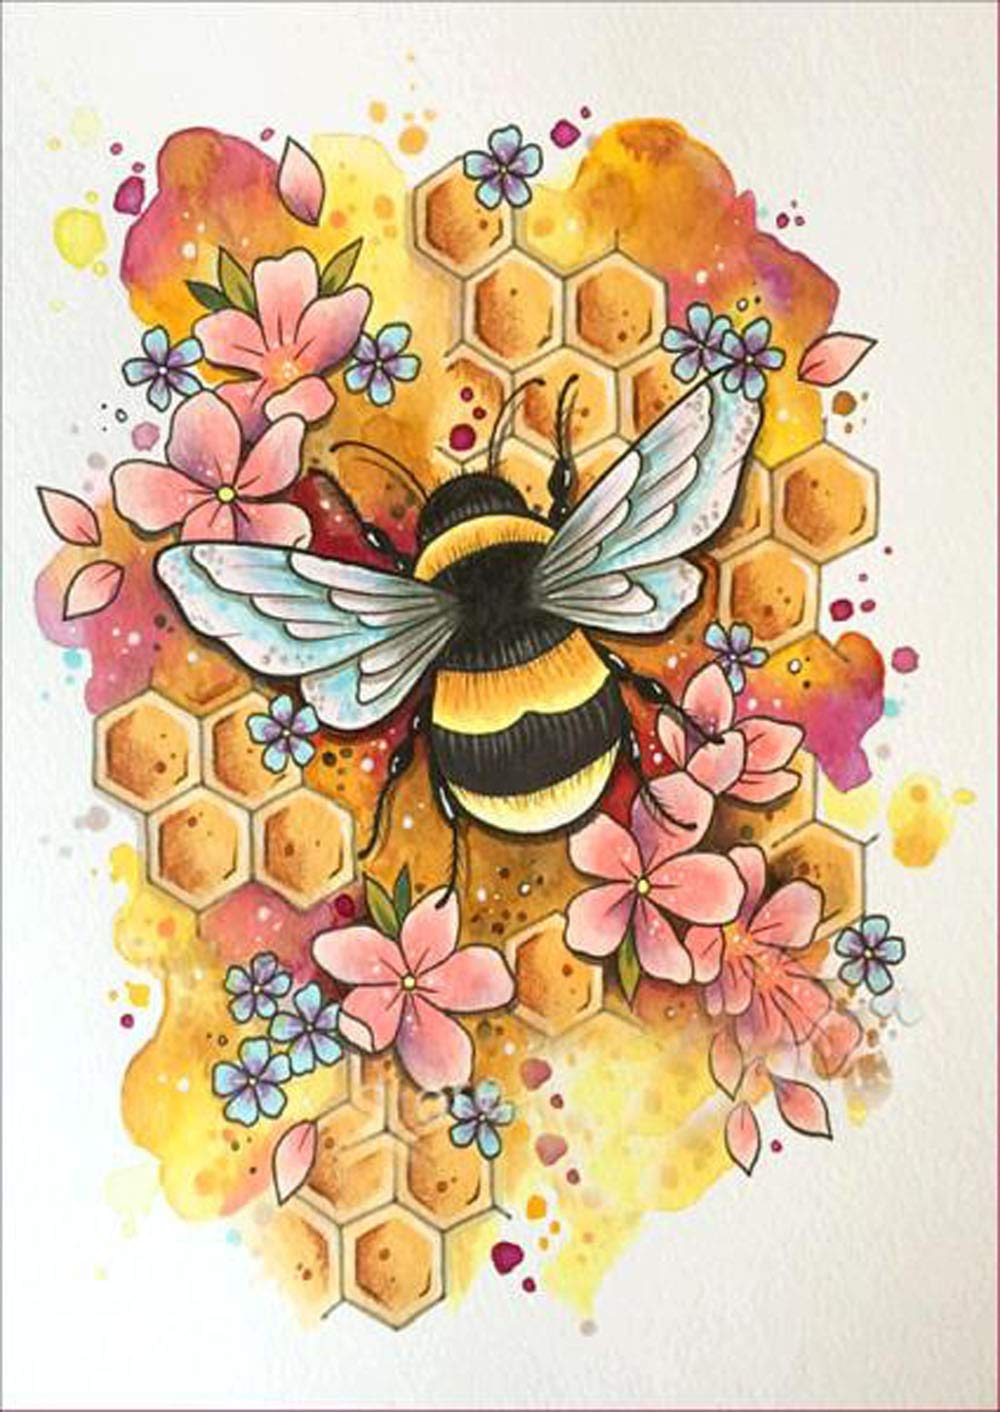 Rumas 5D DIY Bee Diamond Paintings Kits 30 X 40 cm - Non-Fade Embroidery Painting Home Wall Decor - Rhinestone Paste Cross Stitch Ornament for Kids Room Entrance Bathroom (Multicolor)